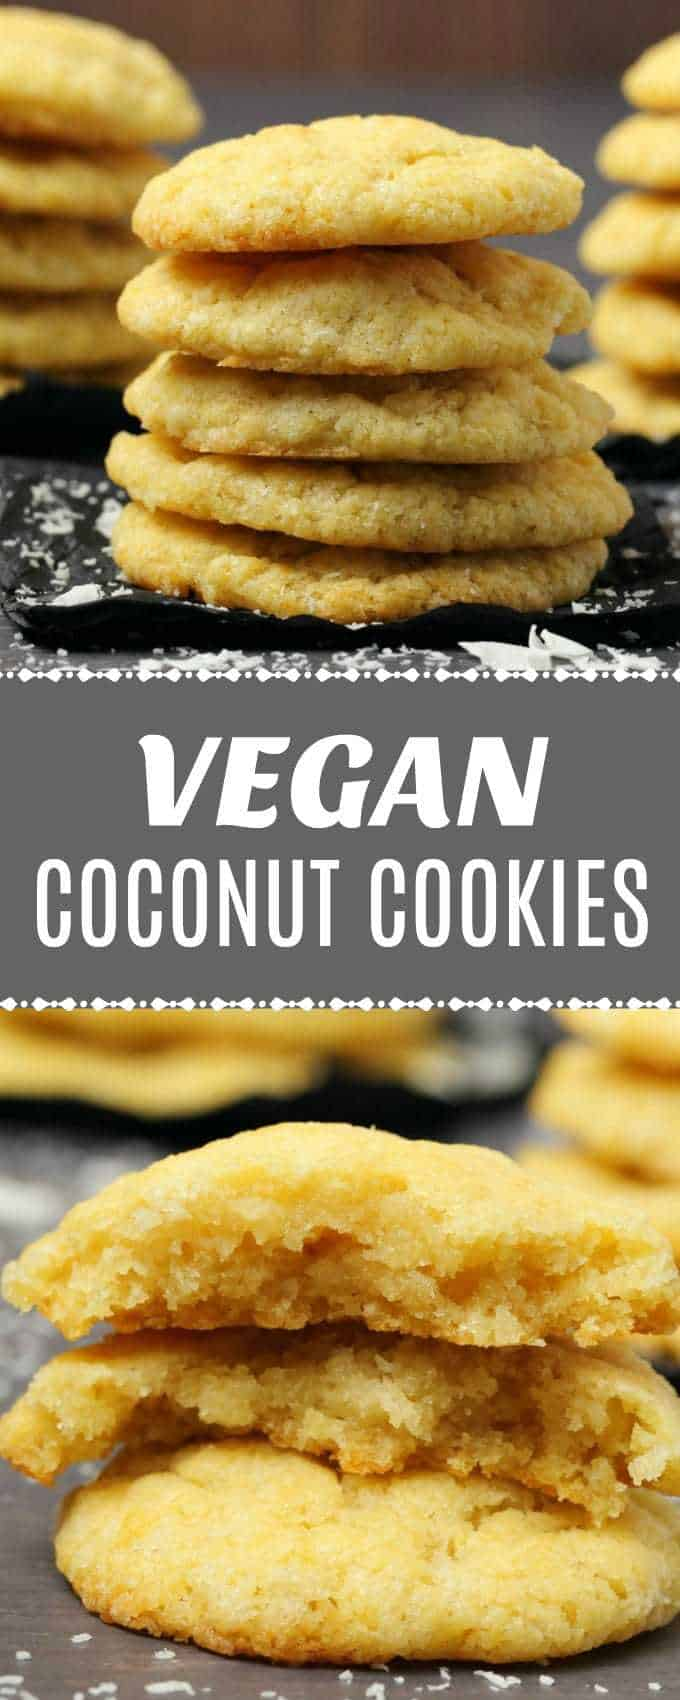 Soft, moist and buttery vegan coconut cookies packed with coconut flavor and texture! Super easy recipe ready in less than 30 minutes! | lovingitvegan.com